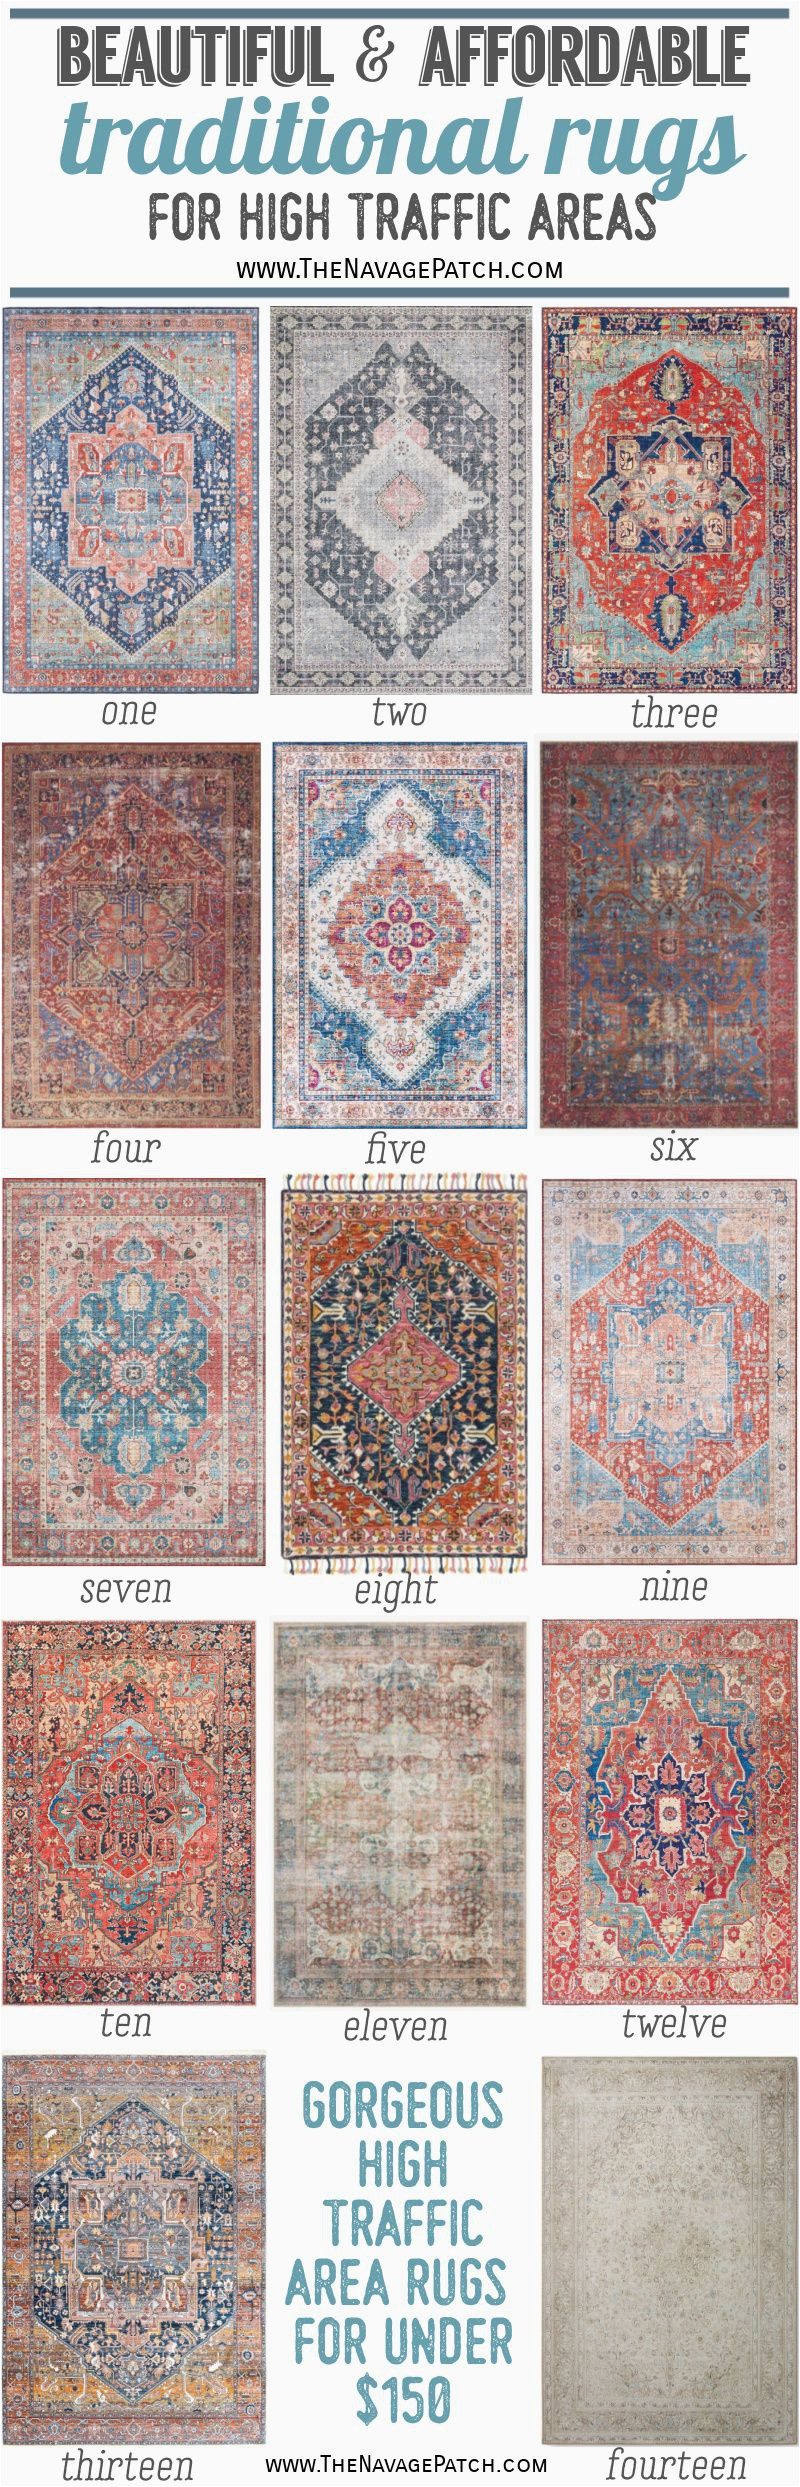 Affordable Area Rugs Pin1 TNP